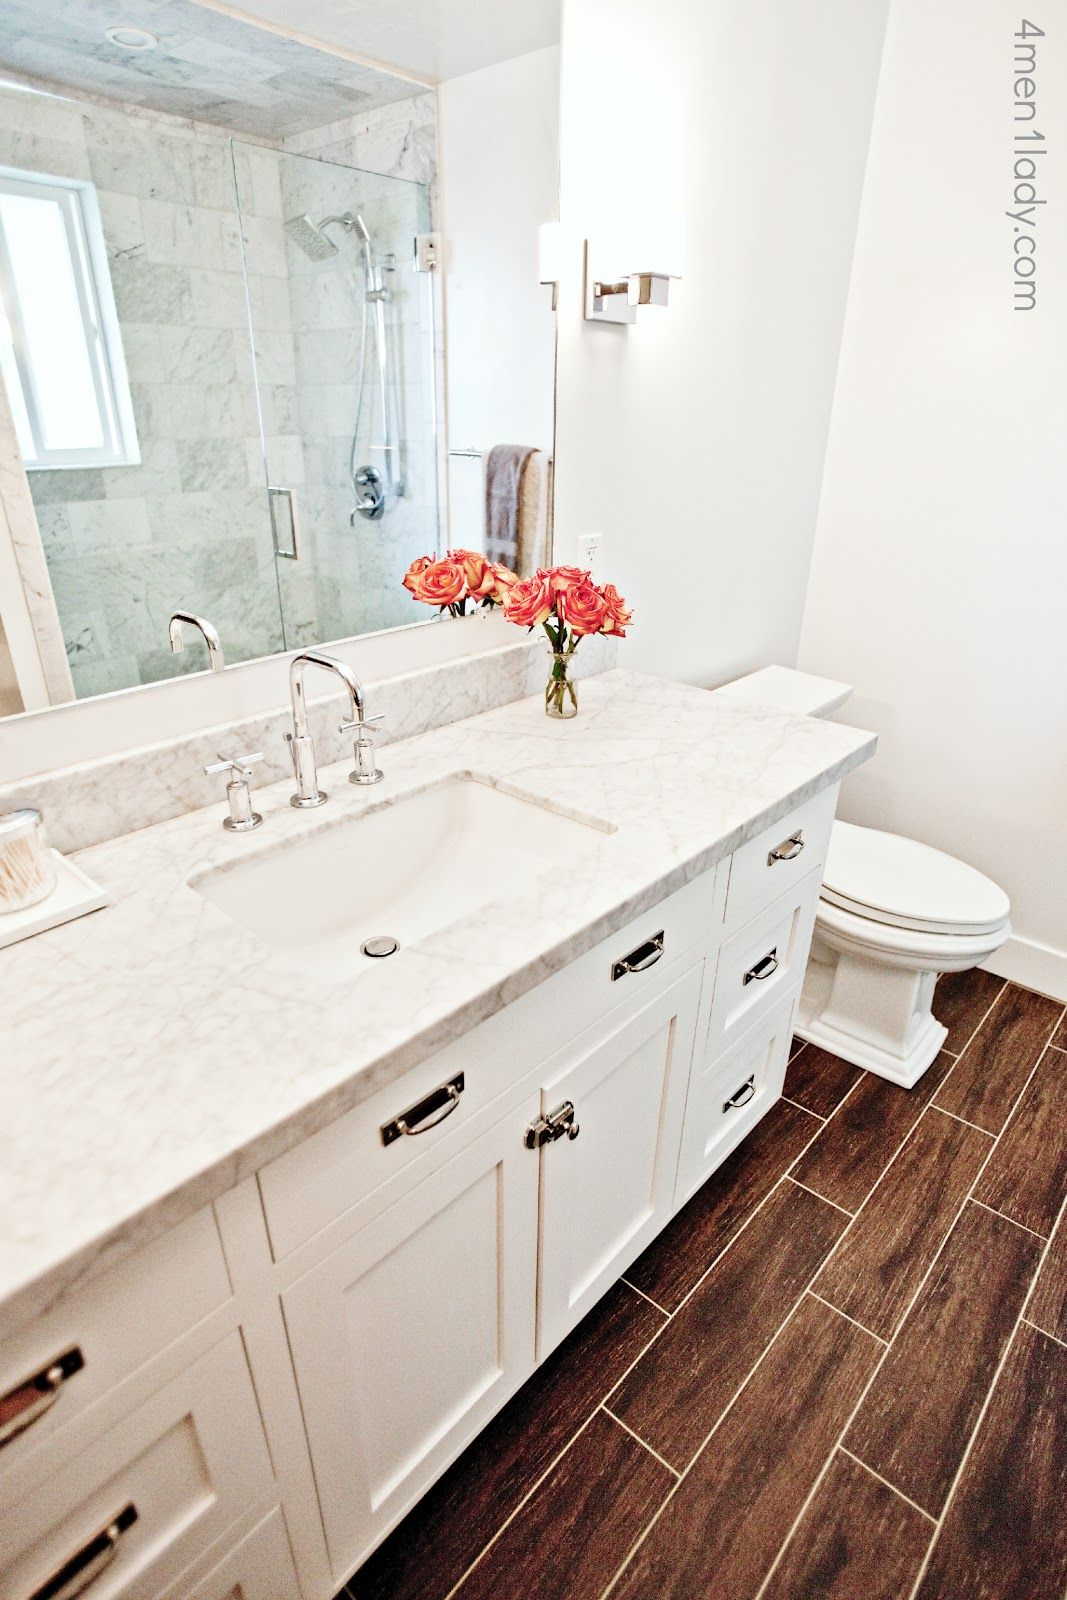 Carrara Marble Bathroom Countertop With Mitered Edge Detail And Rectangle Sink Porcelain Tile